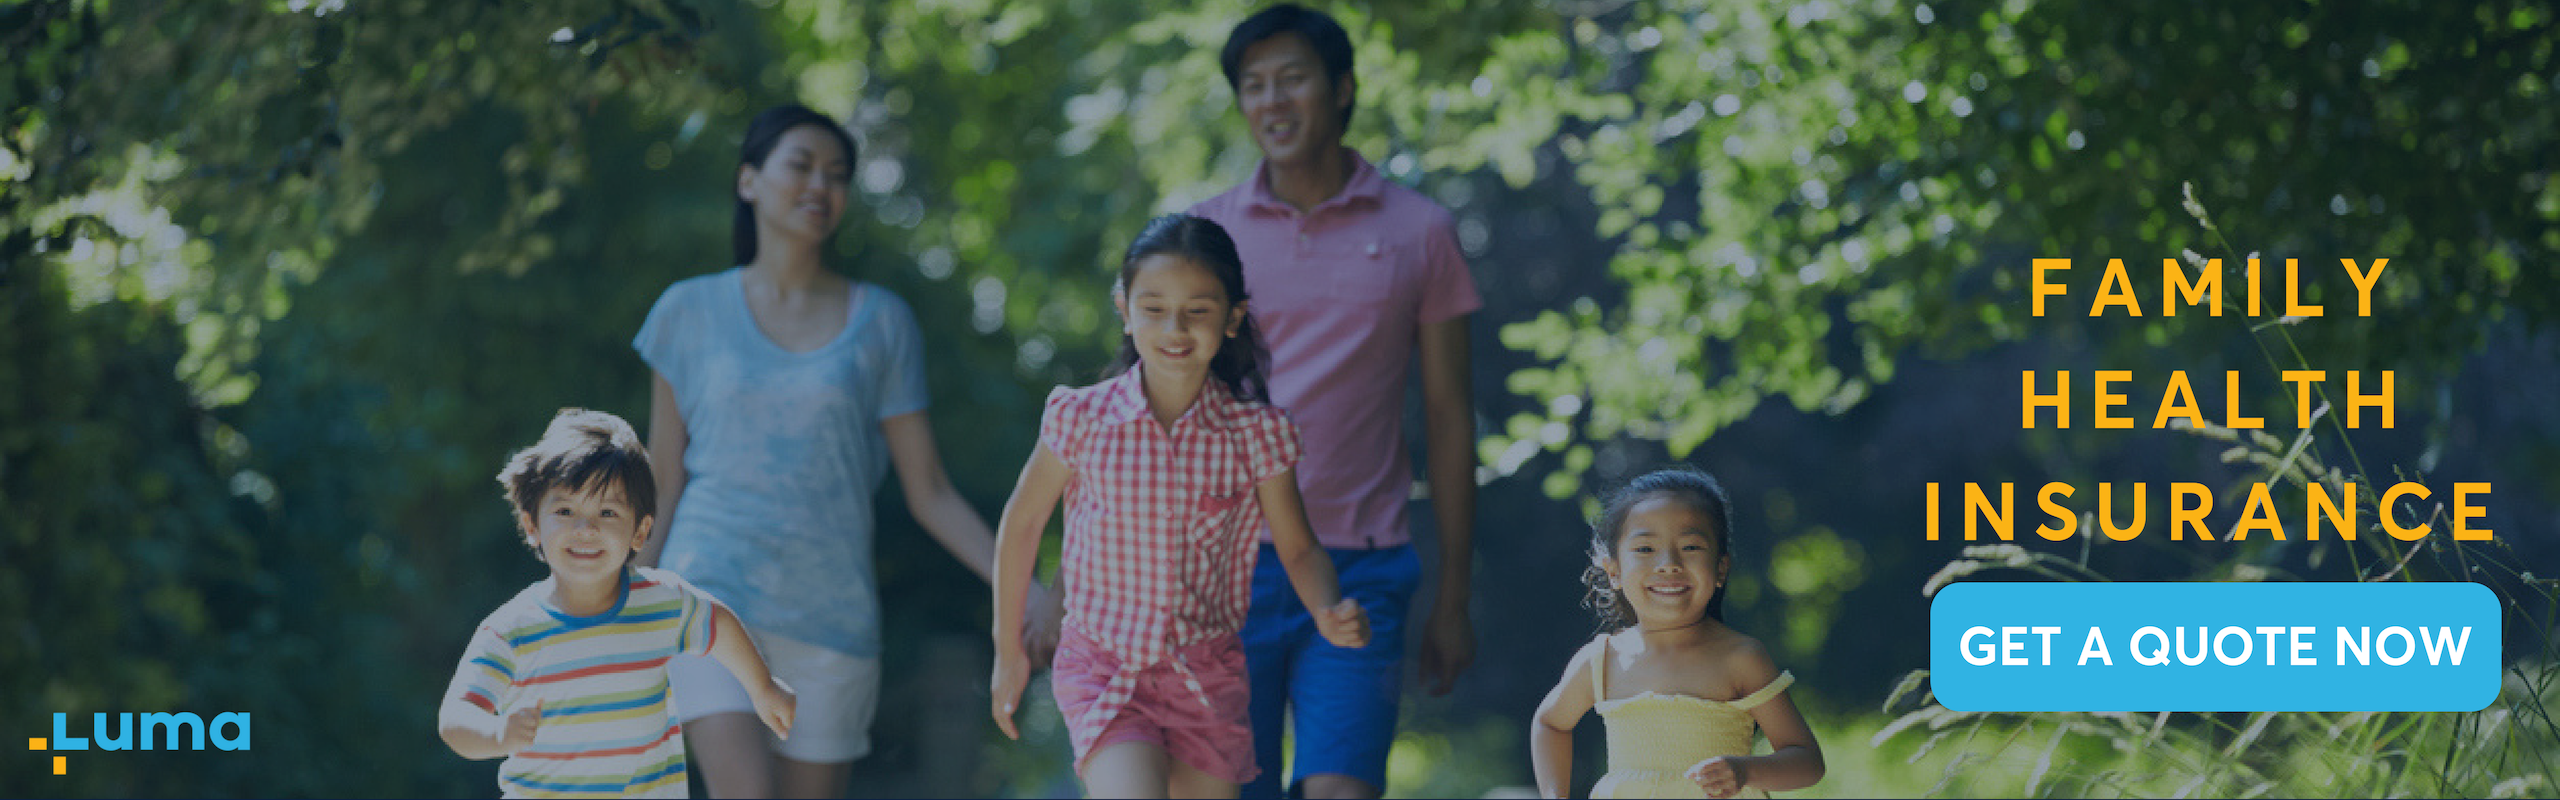 Get a quote for Family Health Insurance